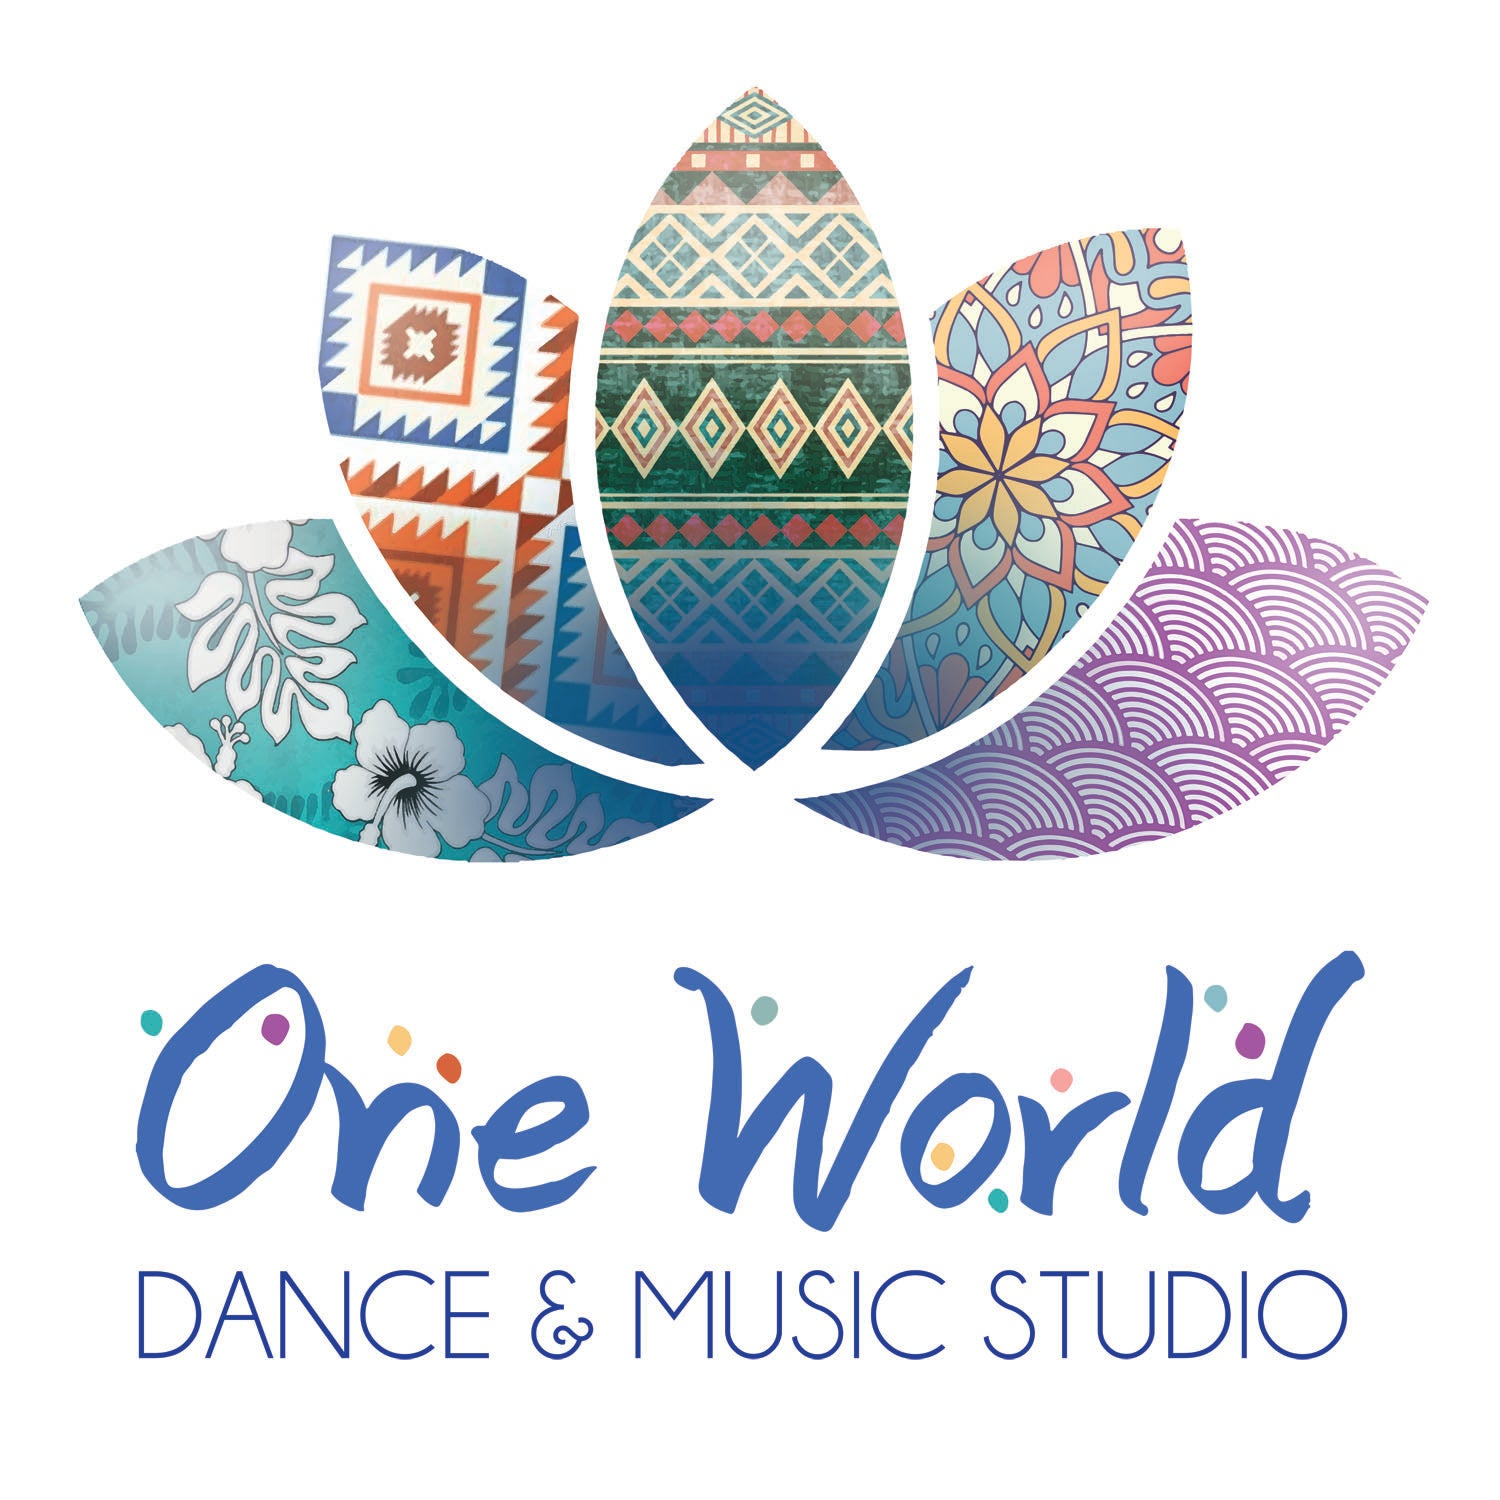 One World Dance & Music